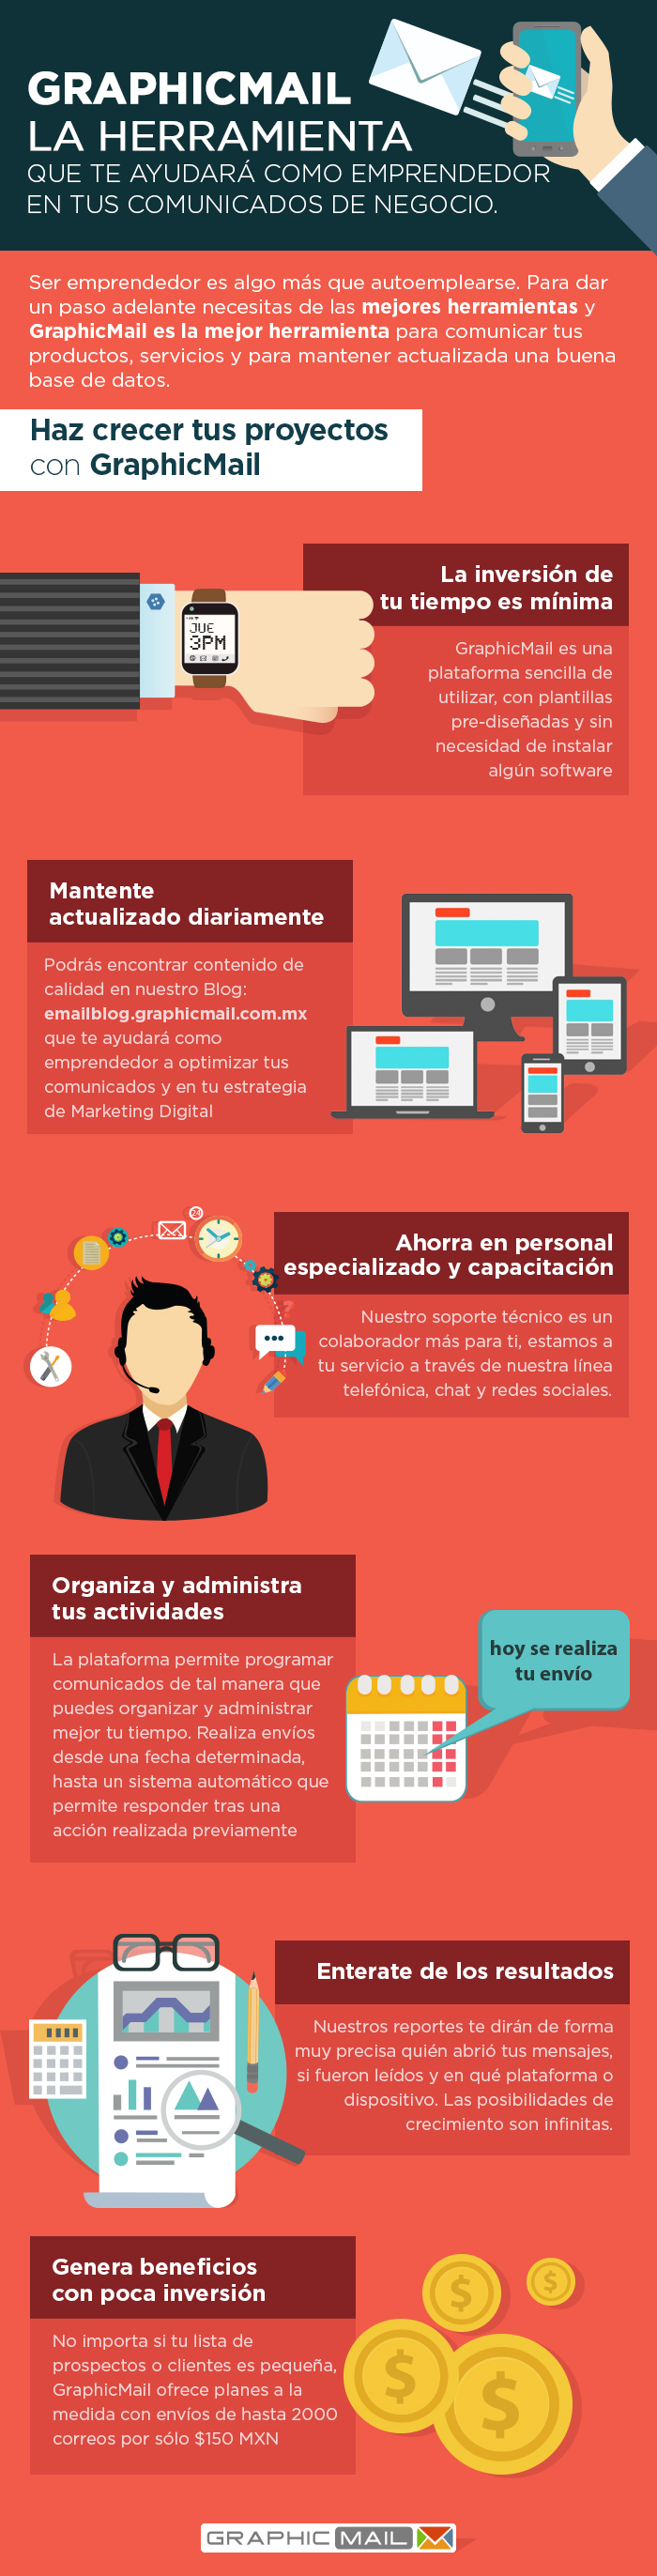 Graphicmail: herramienta para email marketing